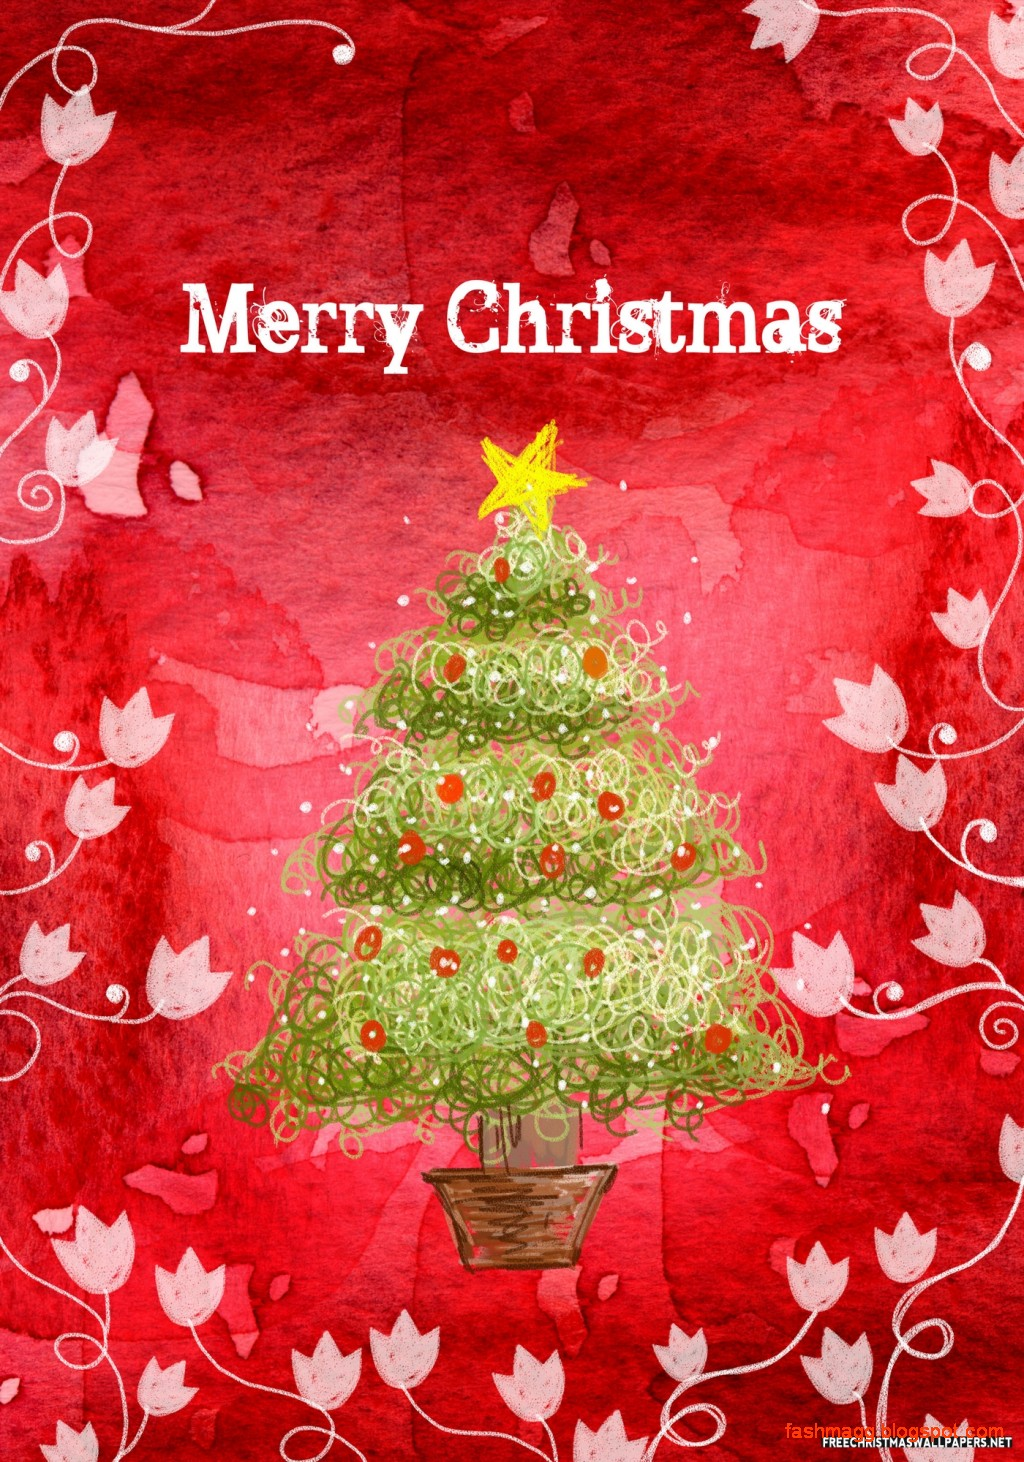 Merry Christmas XMass Greeting ECards PicturesChristmas